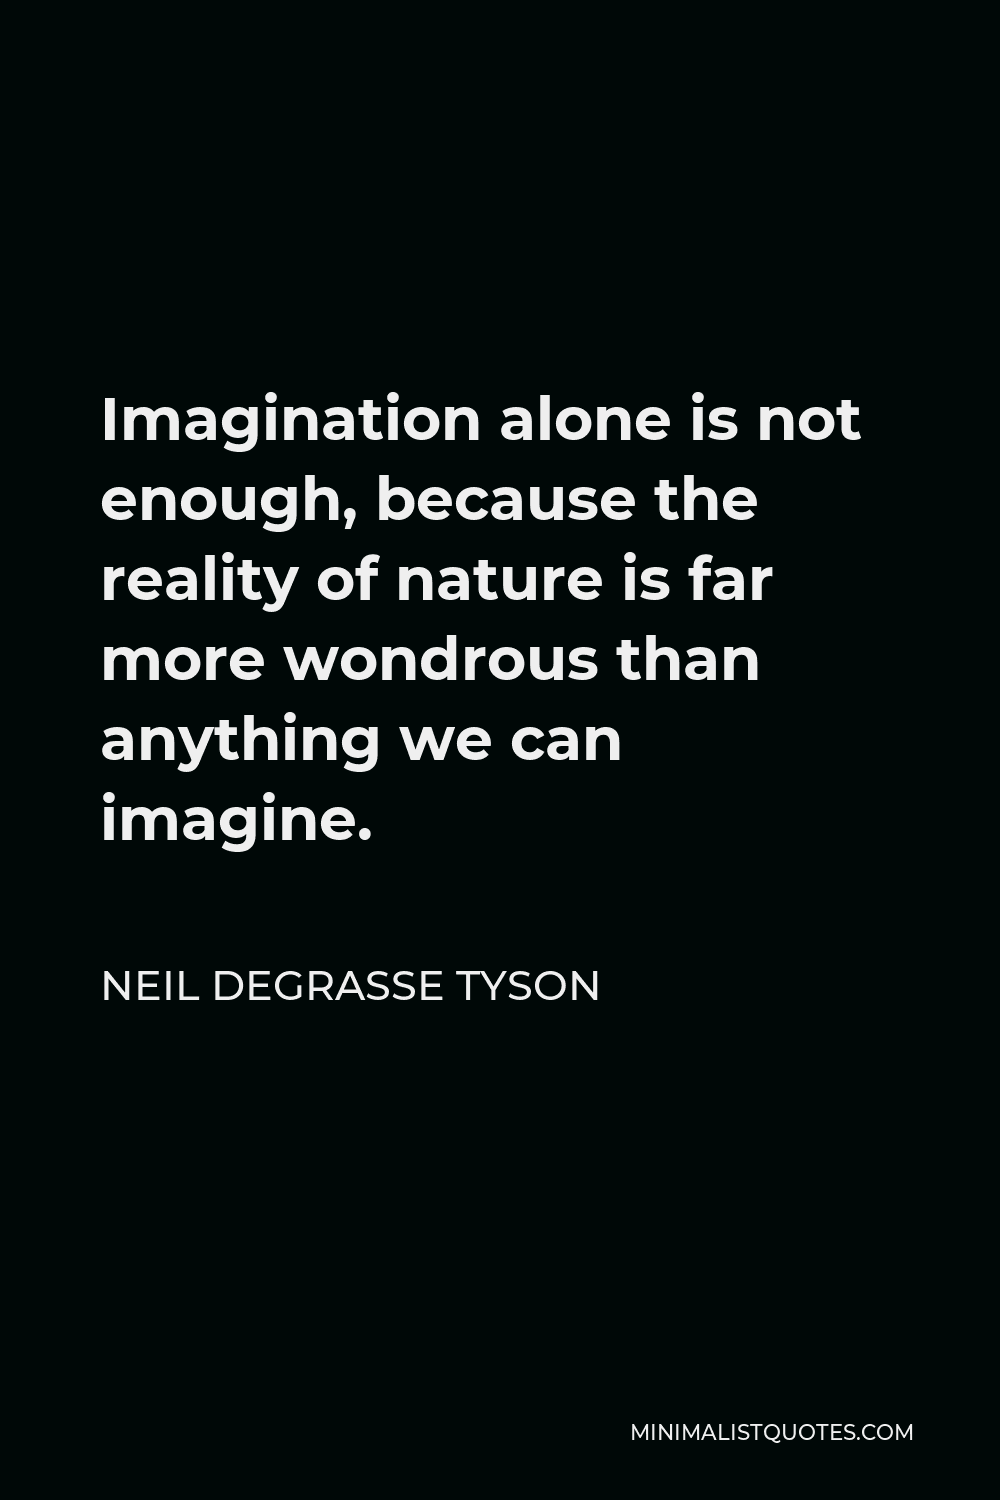 Neil deGrasse Tyson Quote - Imagination alone is not enough, because the reality of nature is far more wondrous than anything we can imagine.